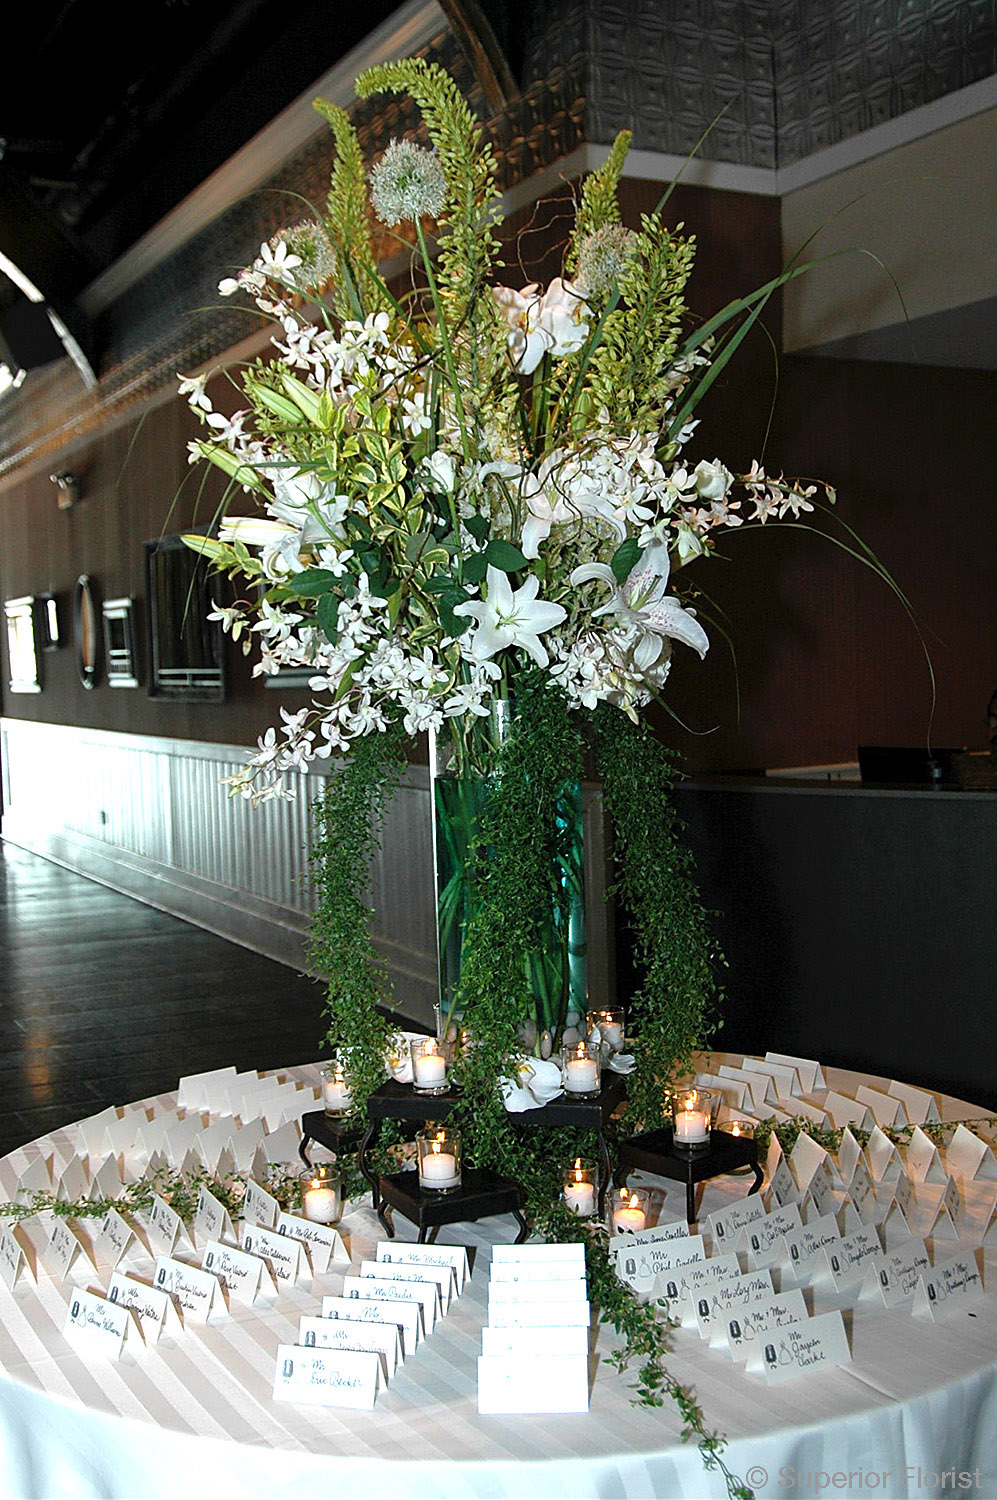 Superior Florist – Weddings – Escort Tables: Eremuras, Casablanca Lilies, white Dendrobiums, and trailing Smilax in a large glass cylinder vase with river rocks in base.